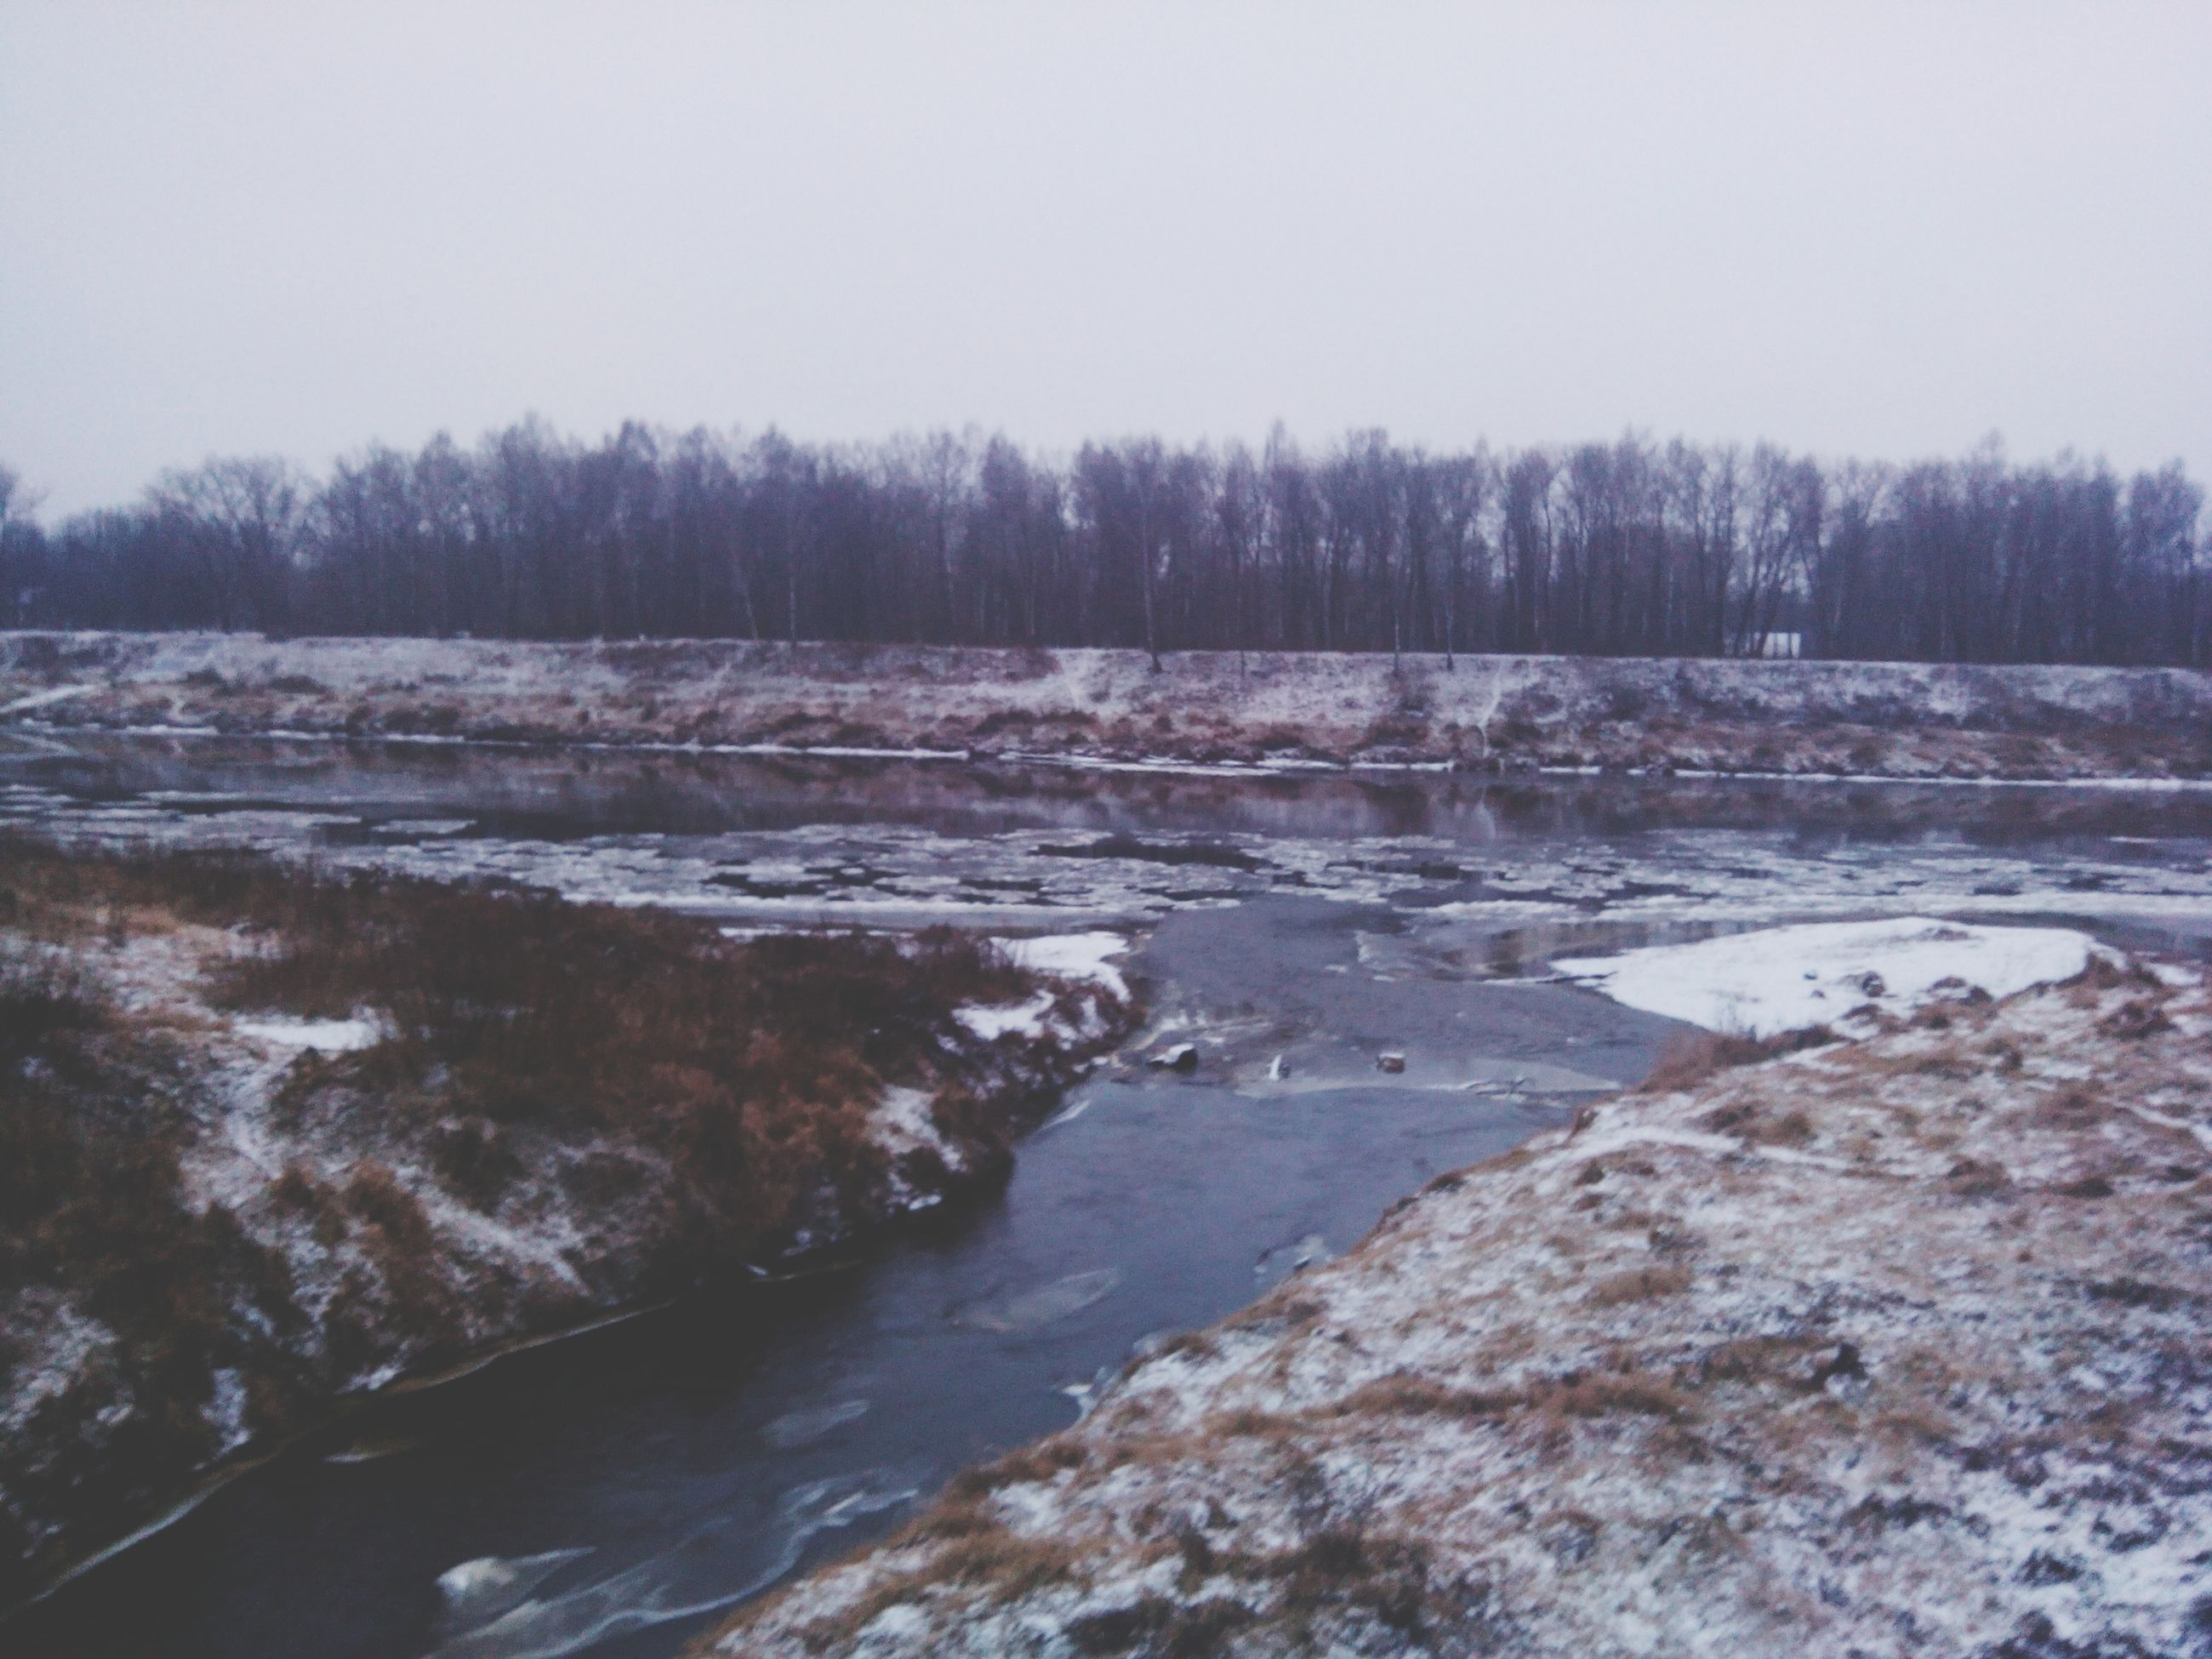 clear sky, tranquility, water, tranquil scene, winter, nature, tree, cold temperature, scenics, snow, beauty in nature, copy space, weather, river, frozen, season, day, non-urban scene, outdoors, no people